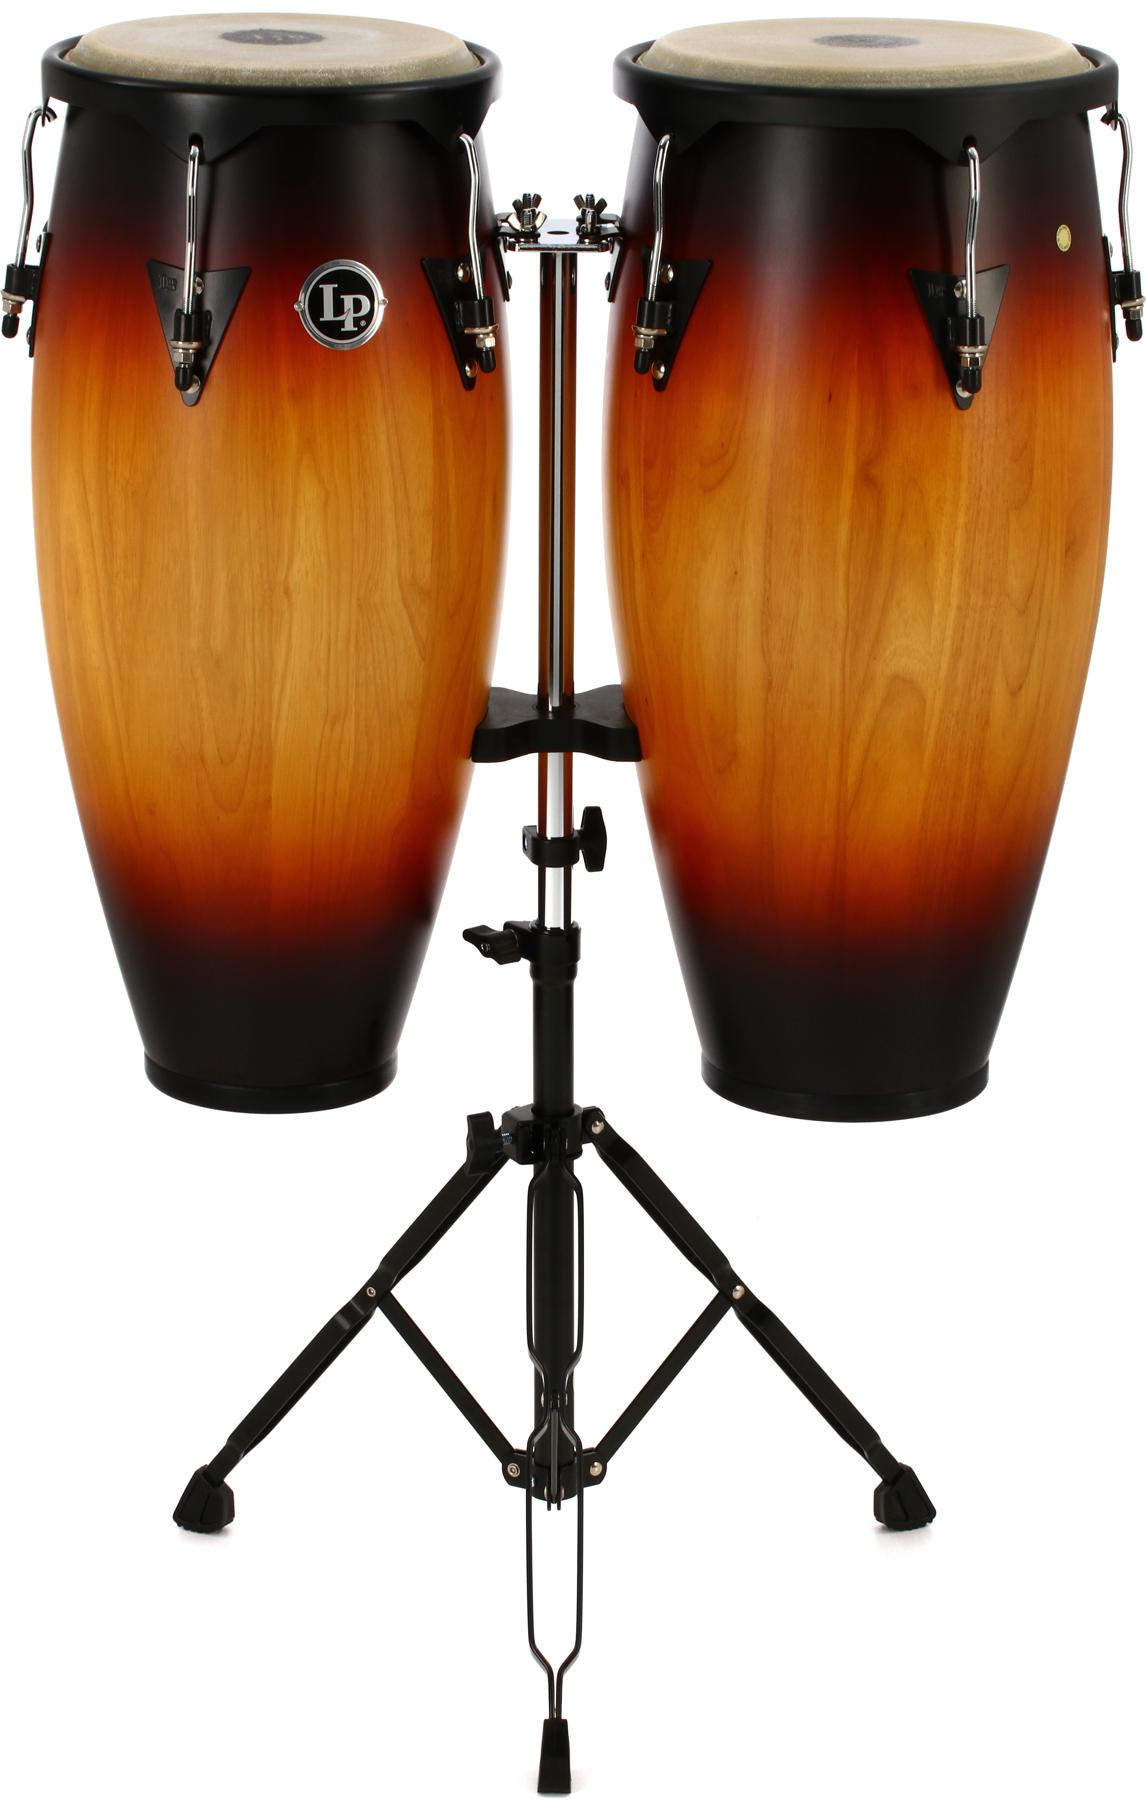 4. Latin Percussion LP City Wood Congas